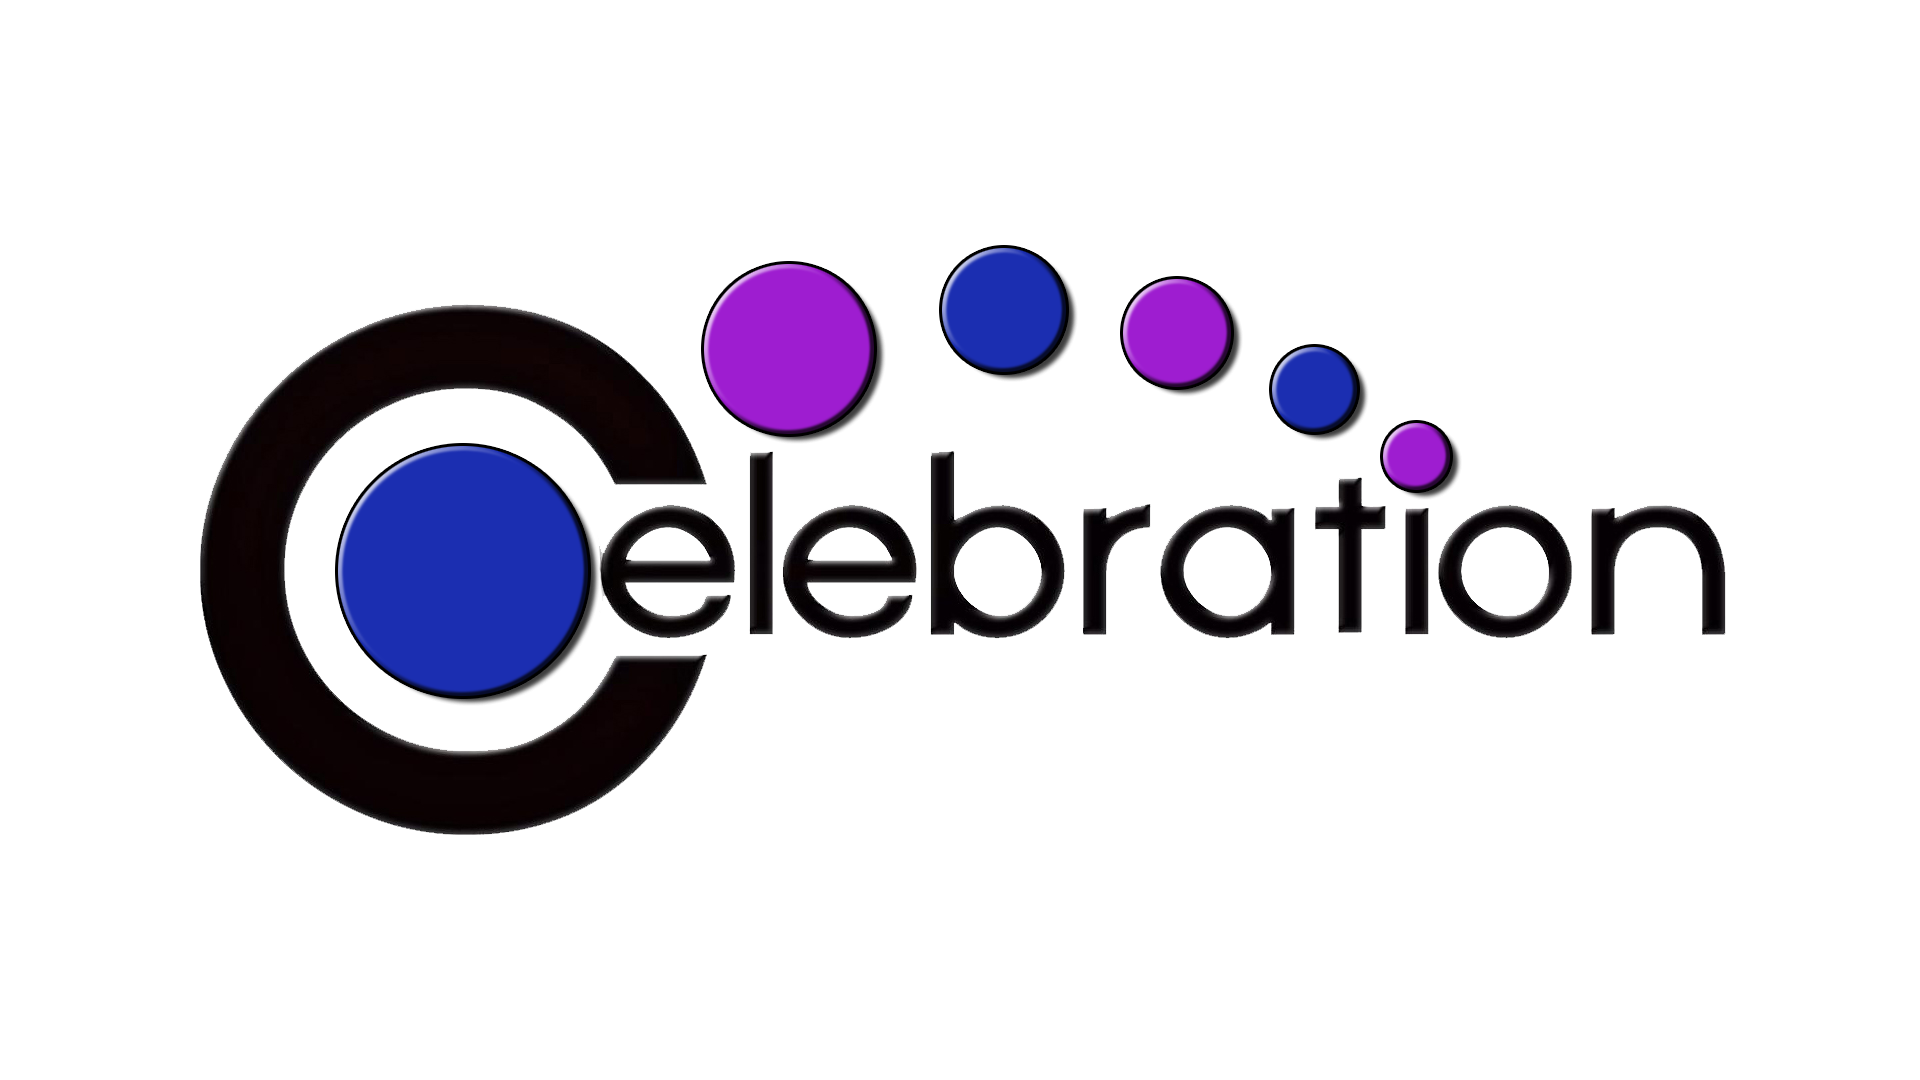 CelebrationOC Logo